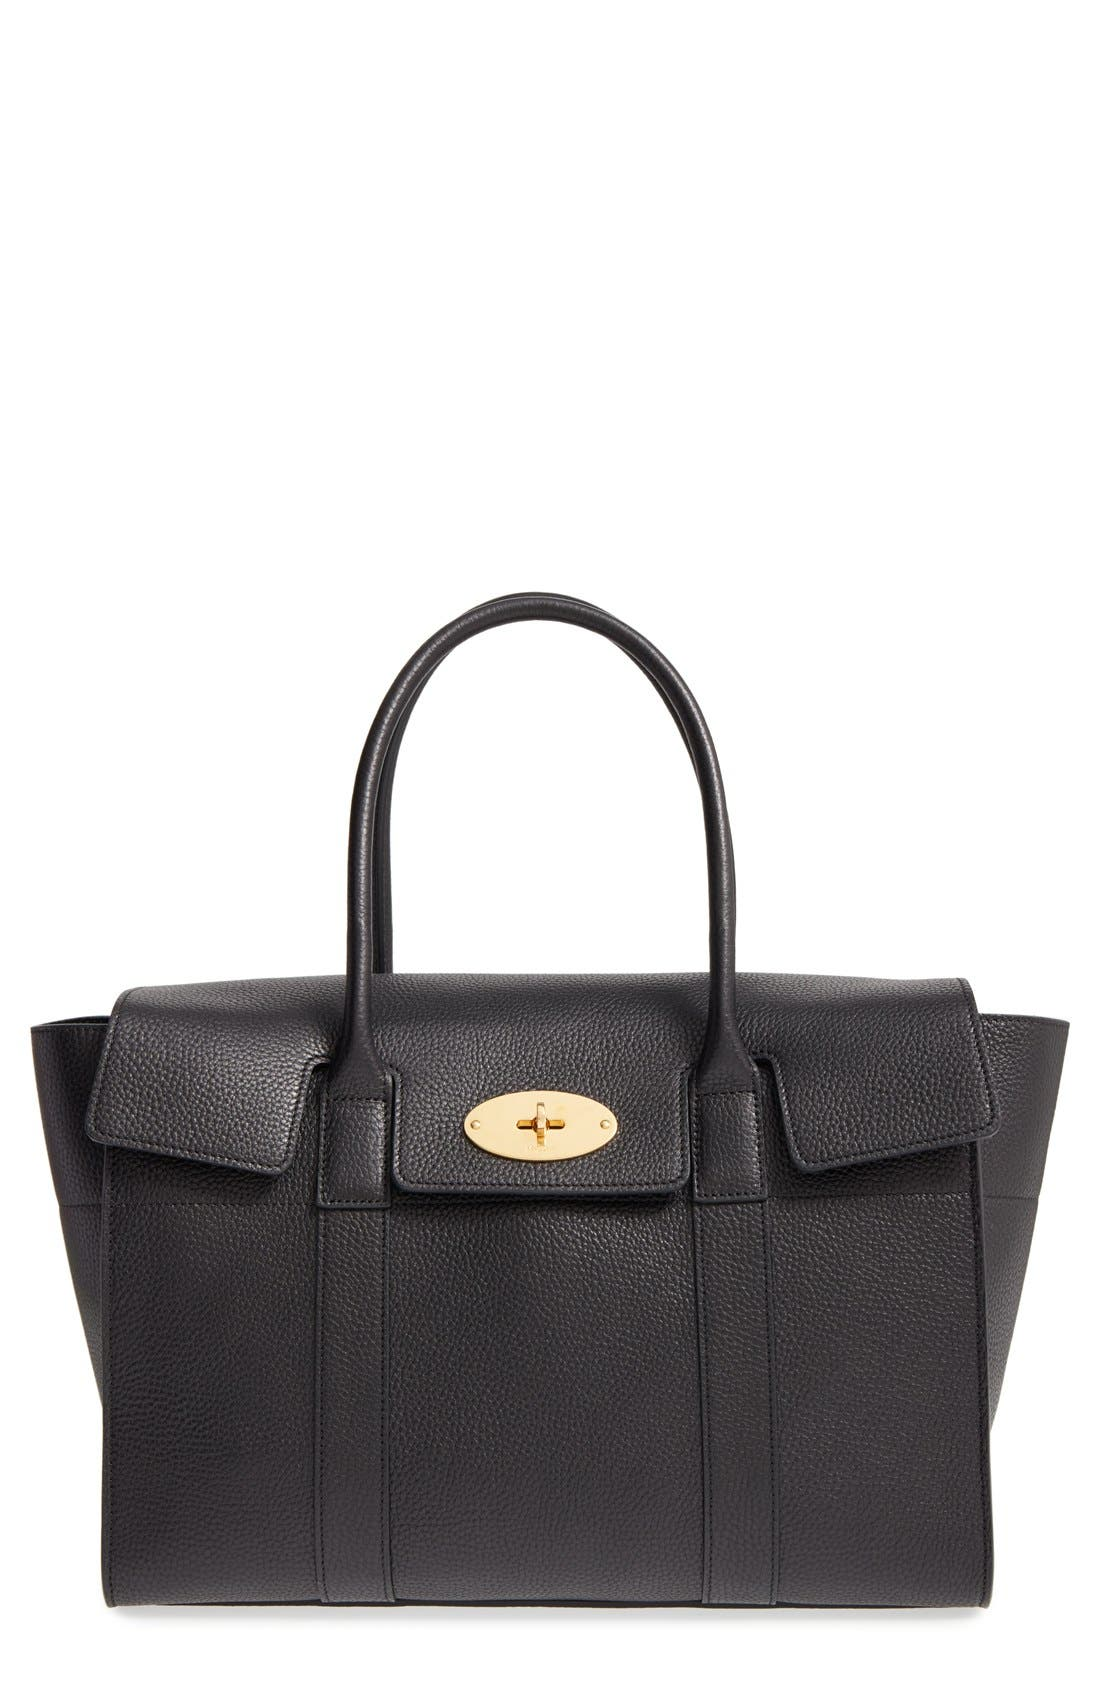 Mulberry 'New Bayswater' Grained Leather Satchel